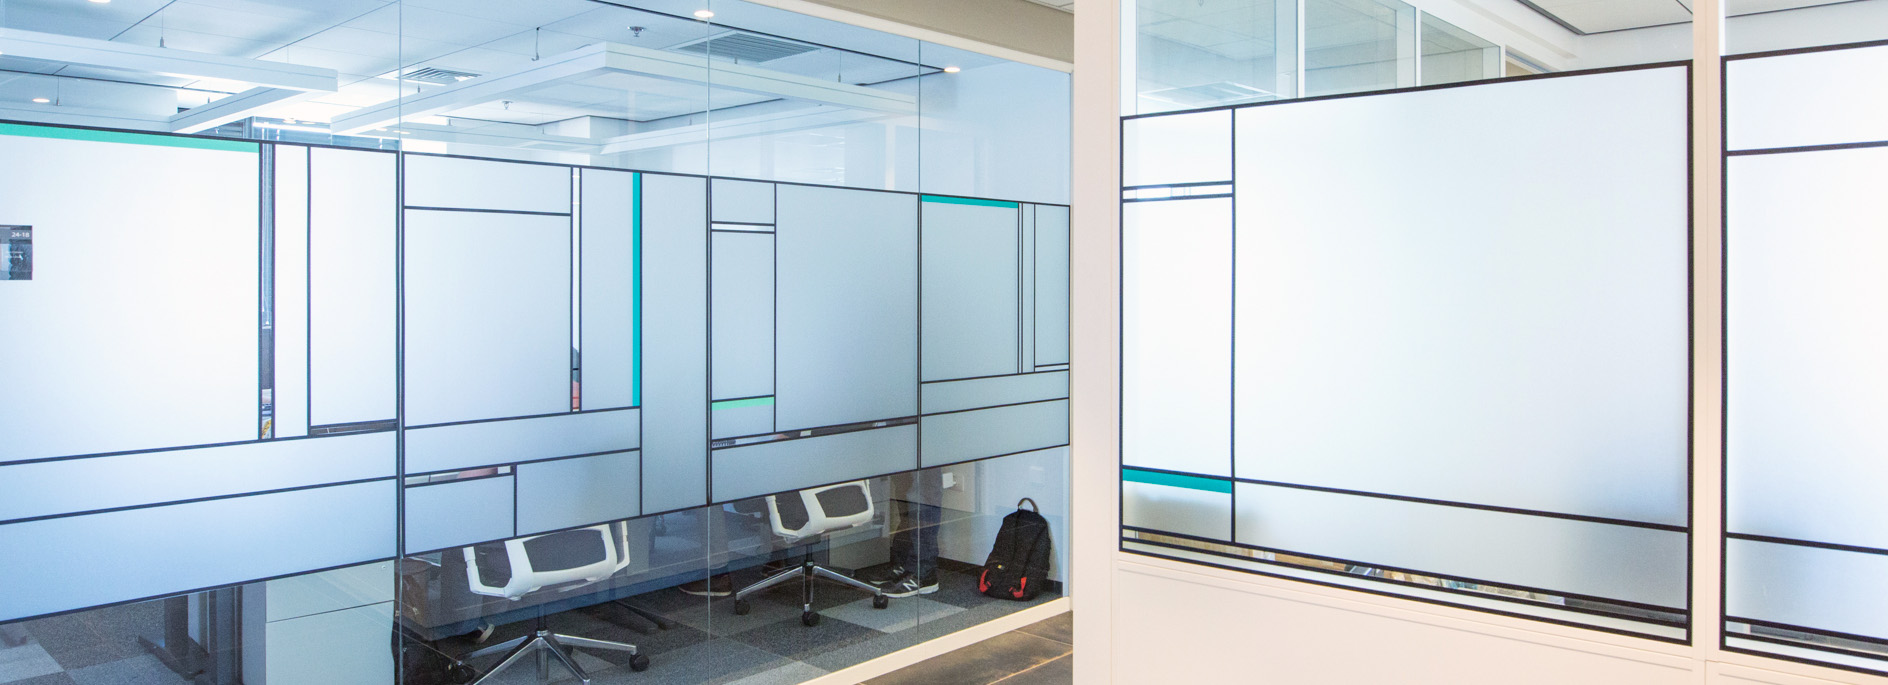 Big Wide Frosted Decals Office Design Ibm 8